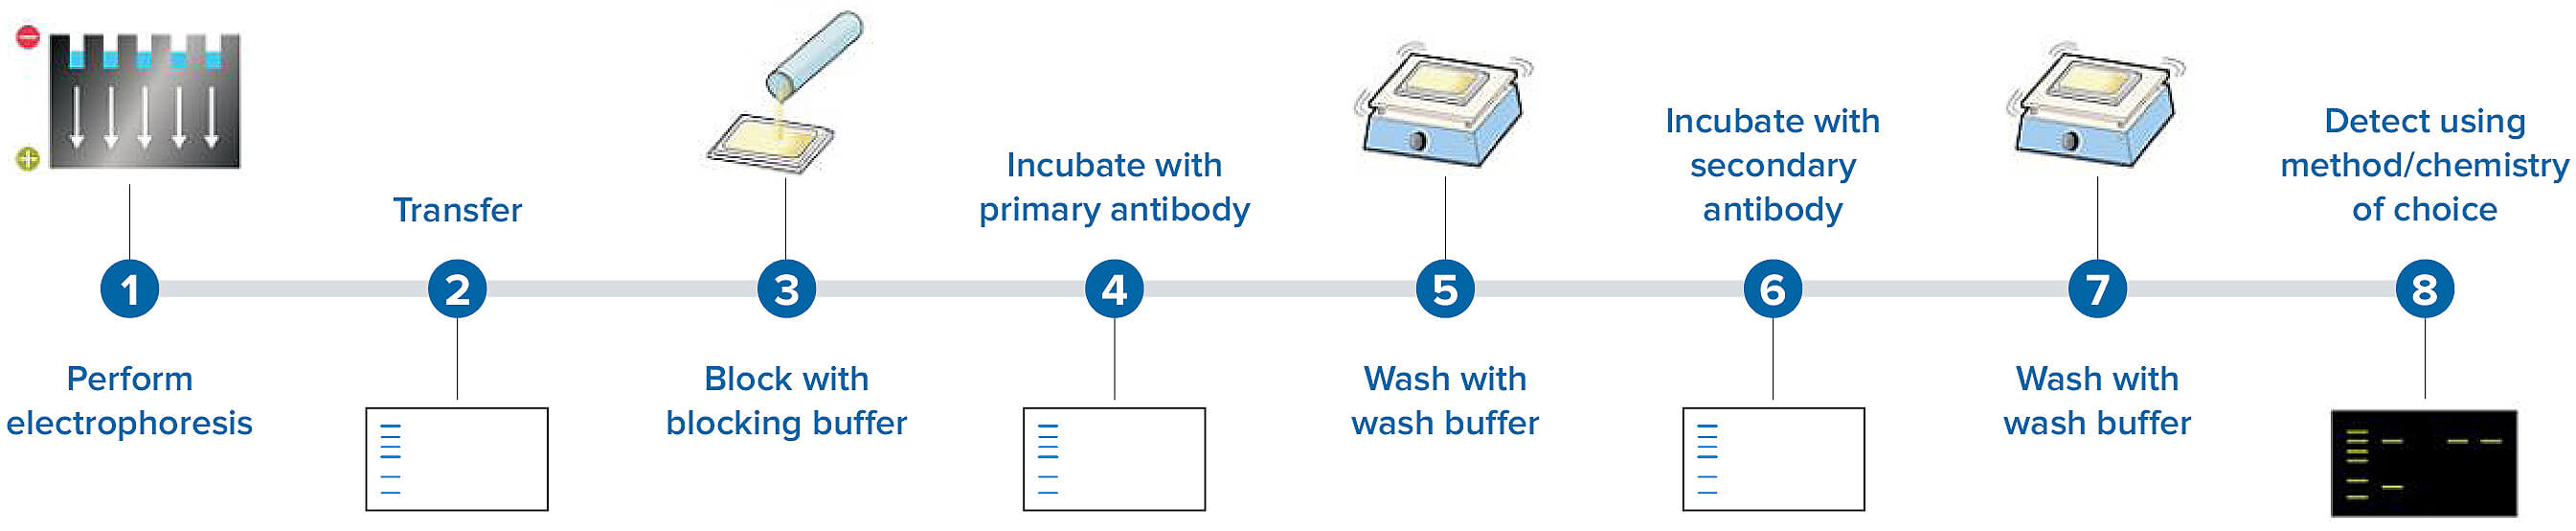 Western blot assay workflow